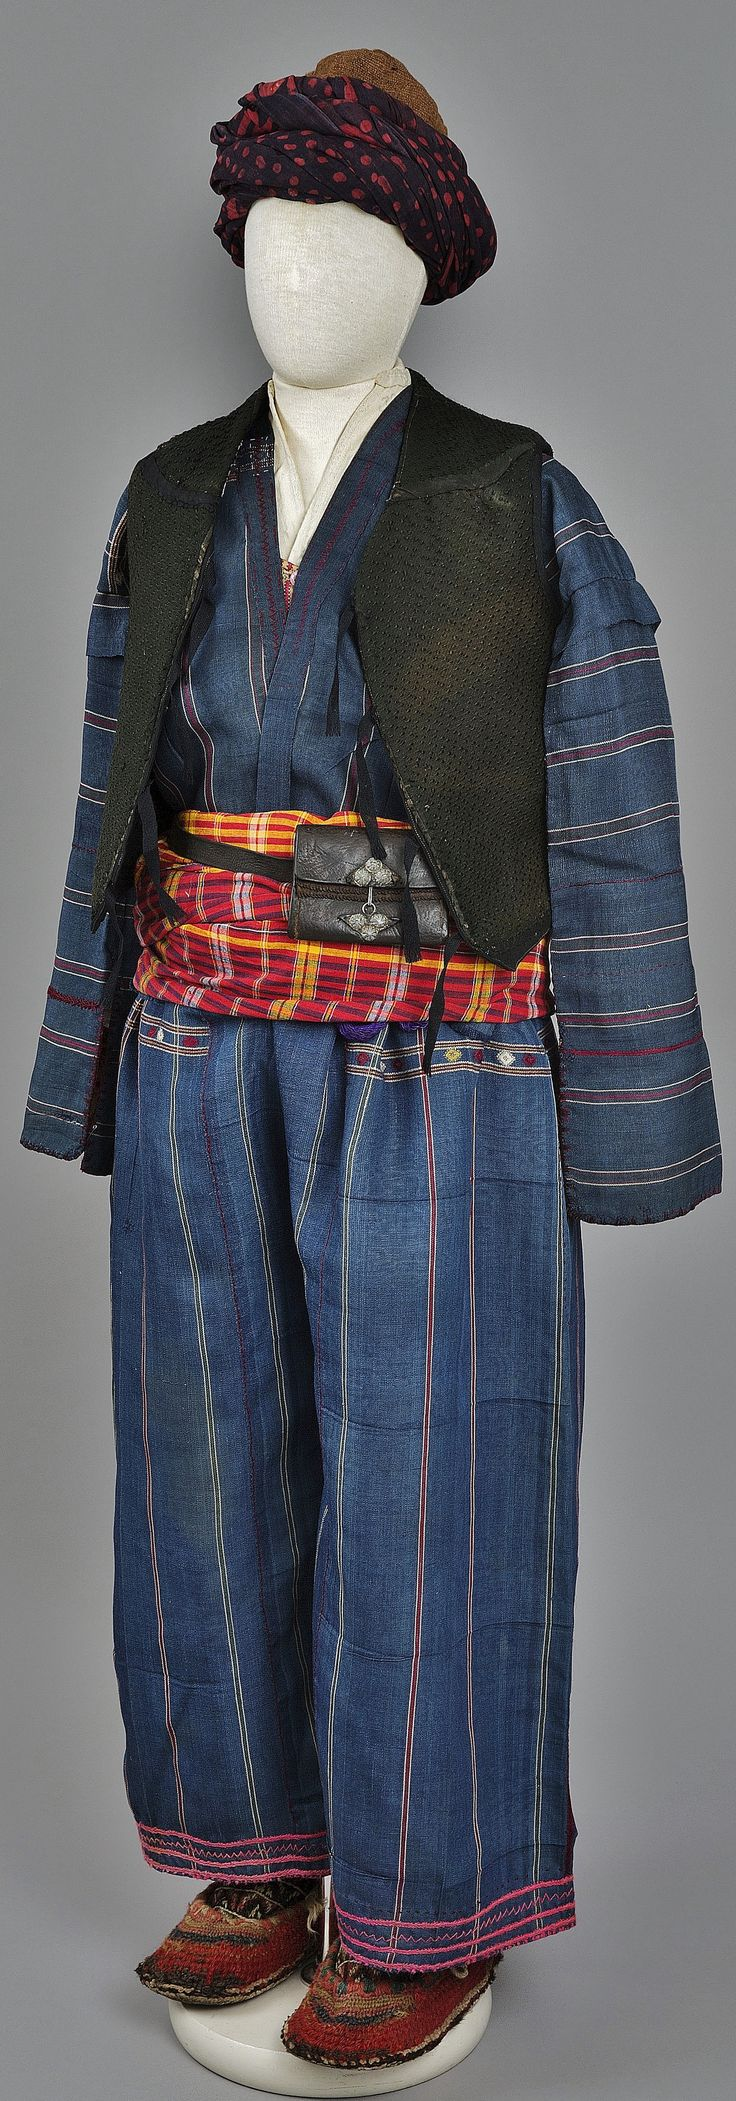 A traditional Armenian costume from the village of Çatak/Shatakh, in the Van province. Early 20h century.  Collected in 1916. (The Russian Museum of Ethnography, St.Petersburg).